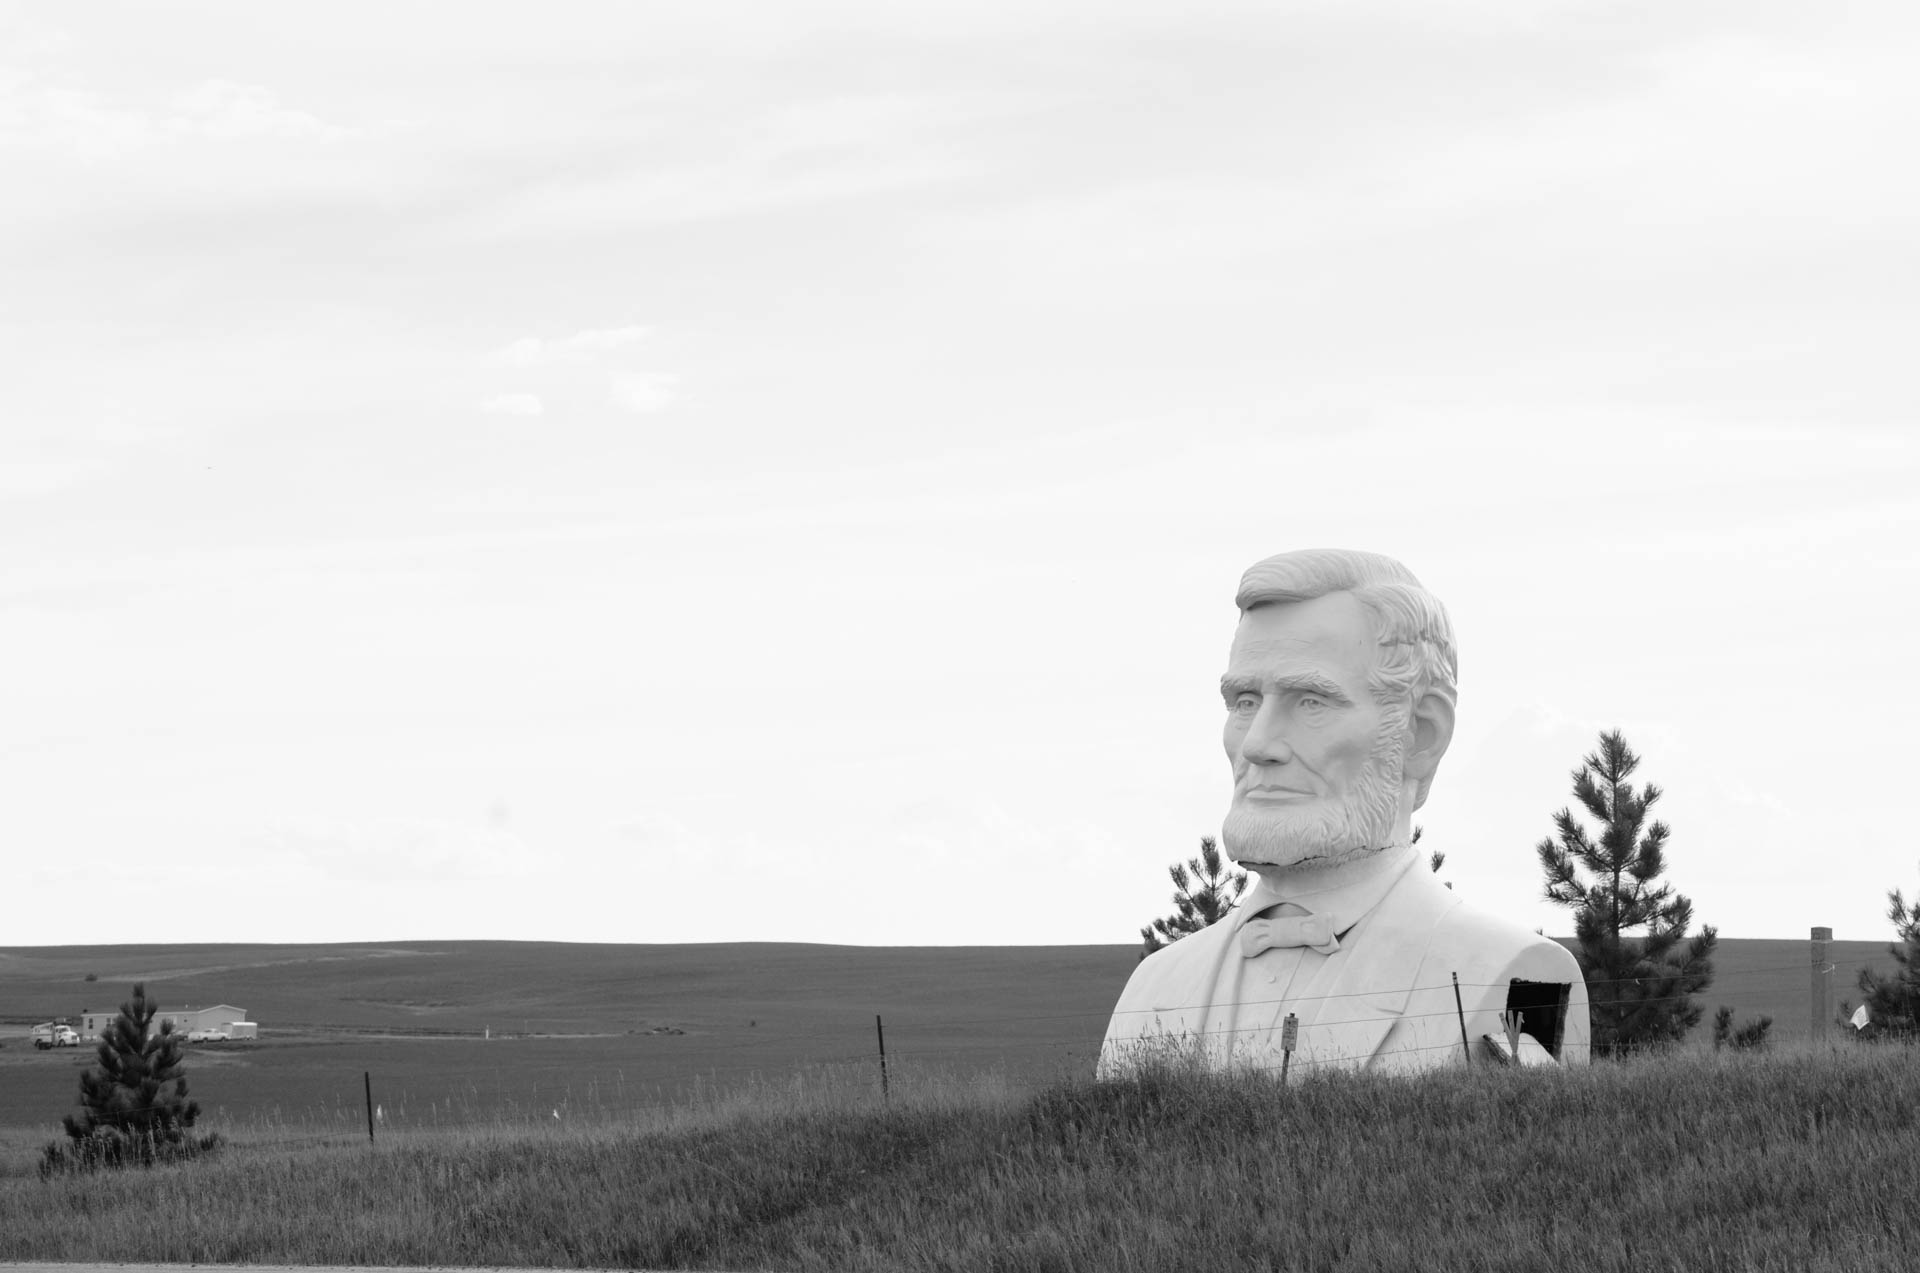 large-lincoln-statue-roadside-in-bakken